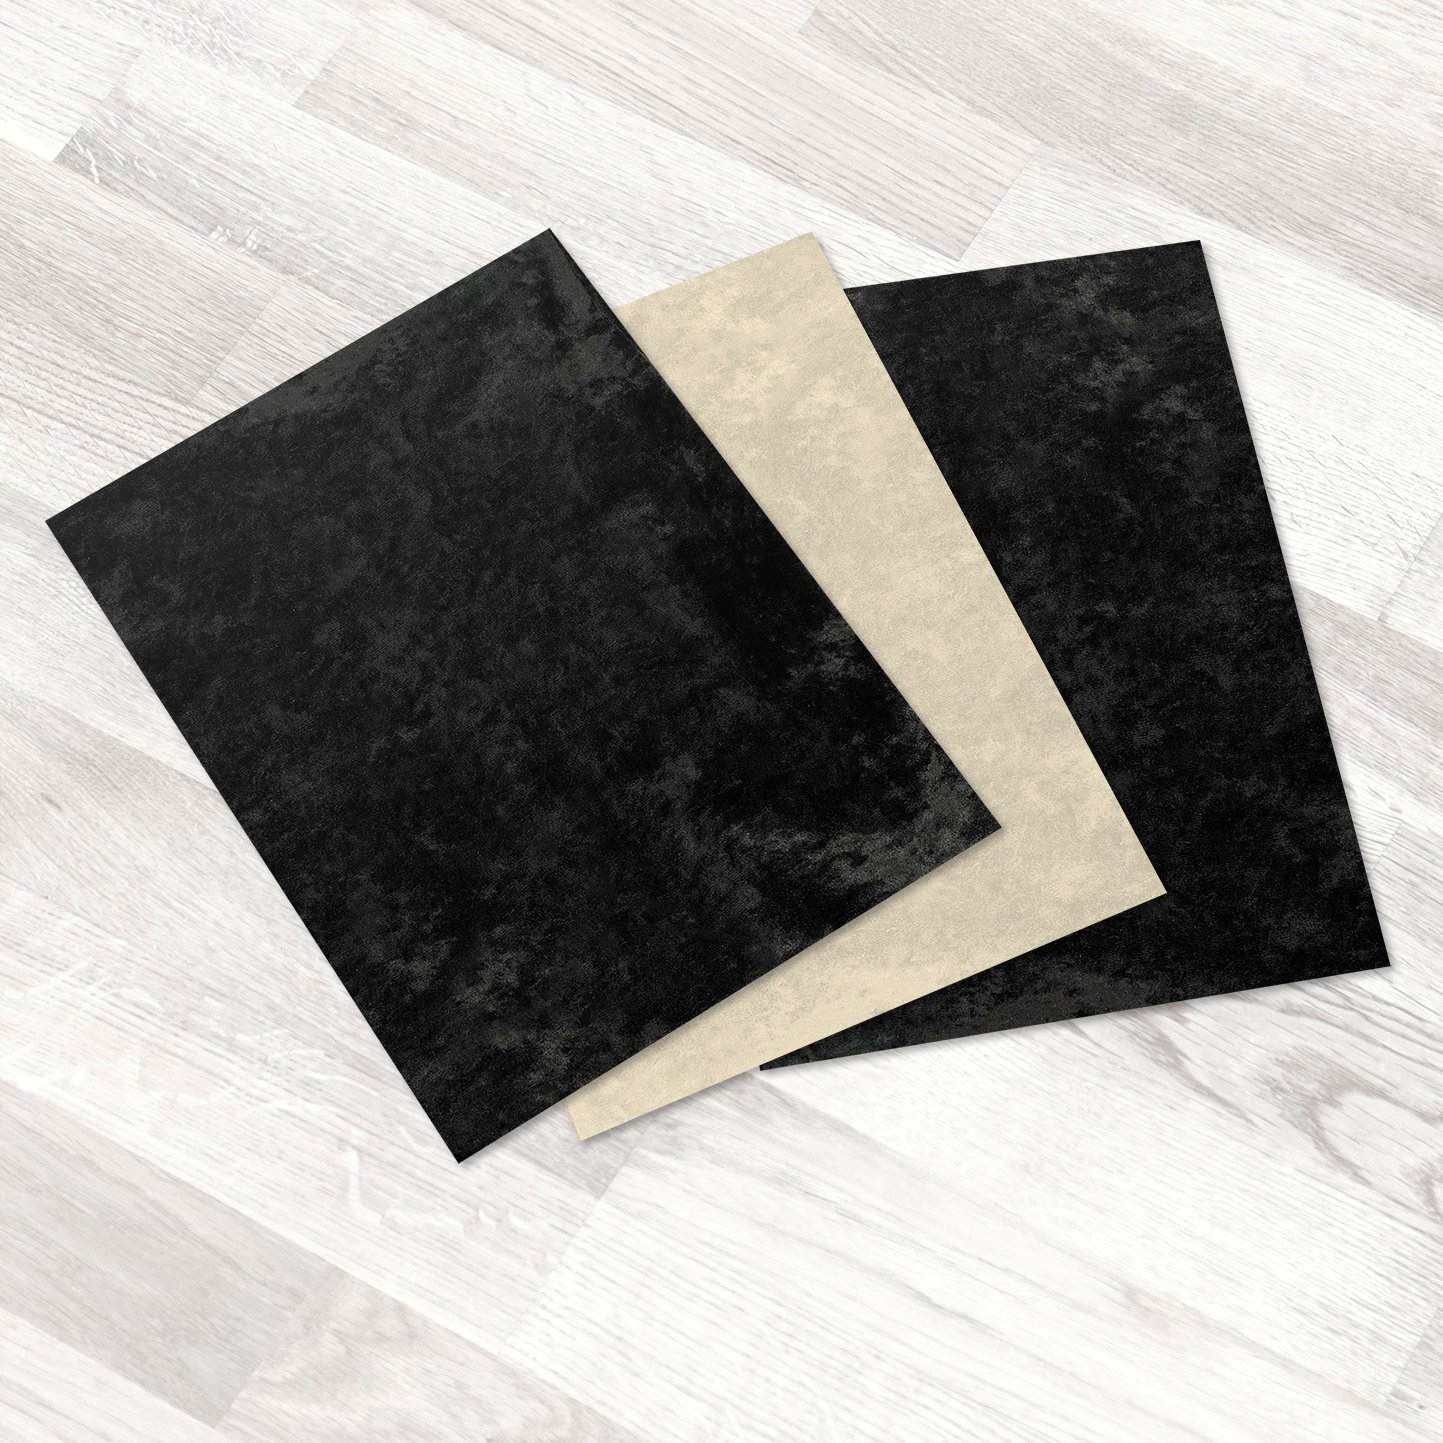 Kenley Stick-on Sole Sheets for Dance Shoes - Set of 3 Black & Beige Eco Suede Soles 8.5'' x 12'' - Sticky Self-Adhesive Backing - Easy Resole Old Dance Shoes, Heels or Sneakers